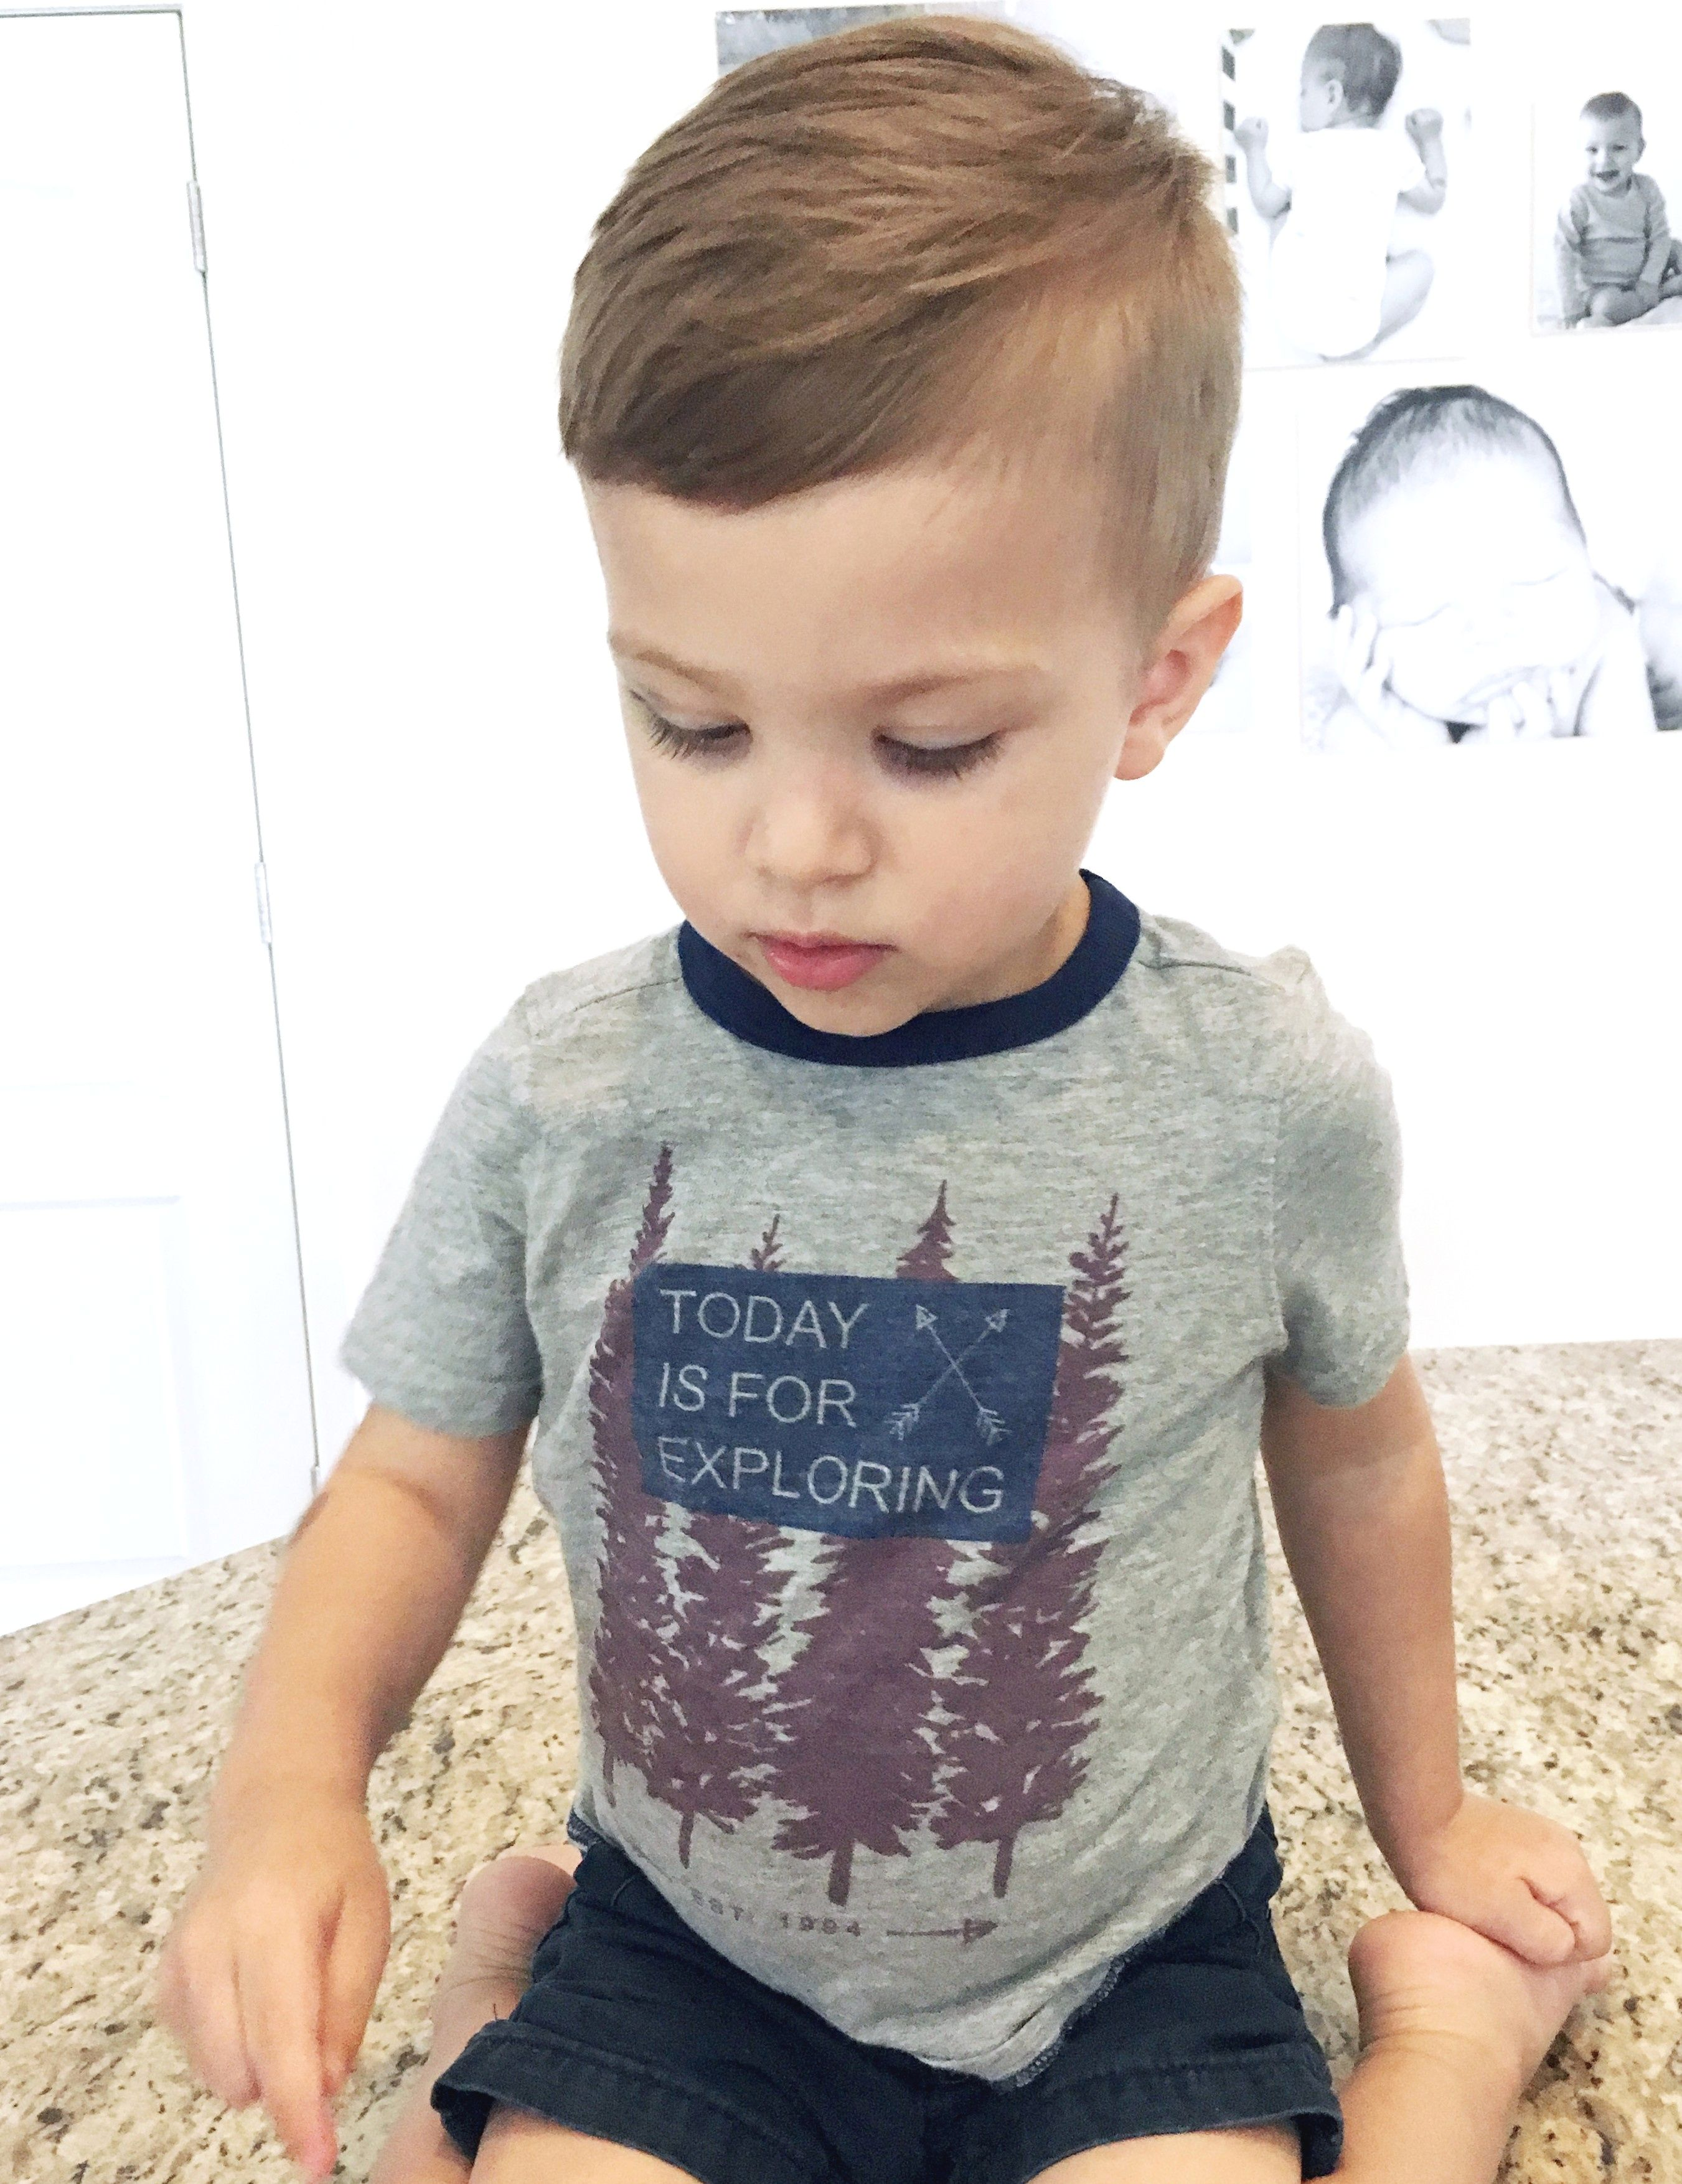 Cool Baby Boy Haircuts New Haircuts For 2 Year Old Boy 2017 Creative Hairstyle Ideas Baby Boy Hairstyles Toddler Hairstyles Boy Toddler Haircuts